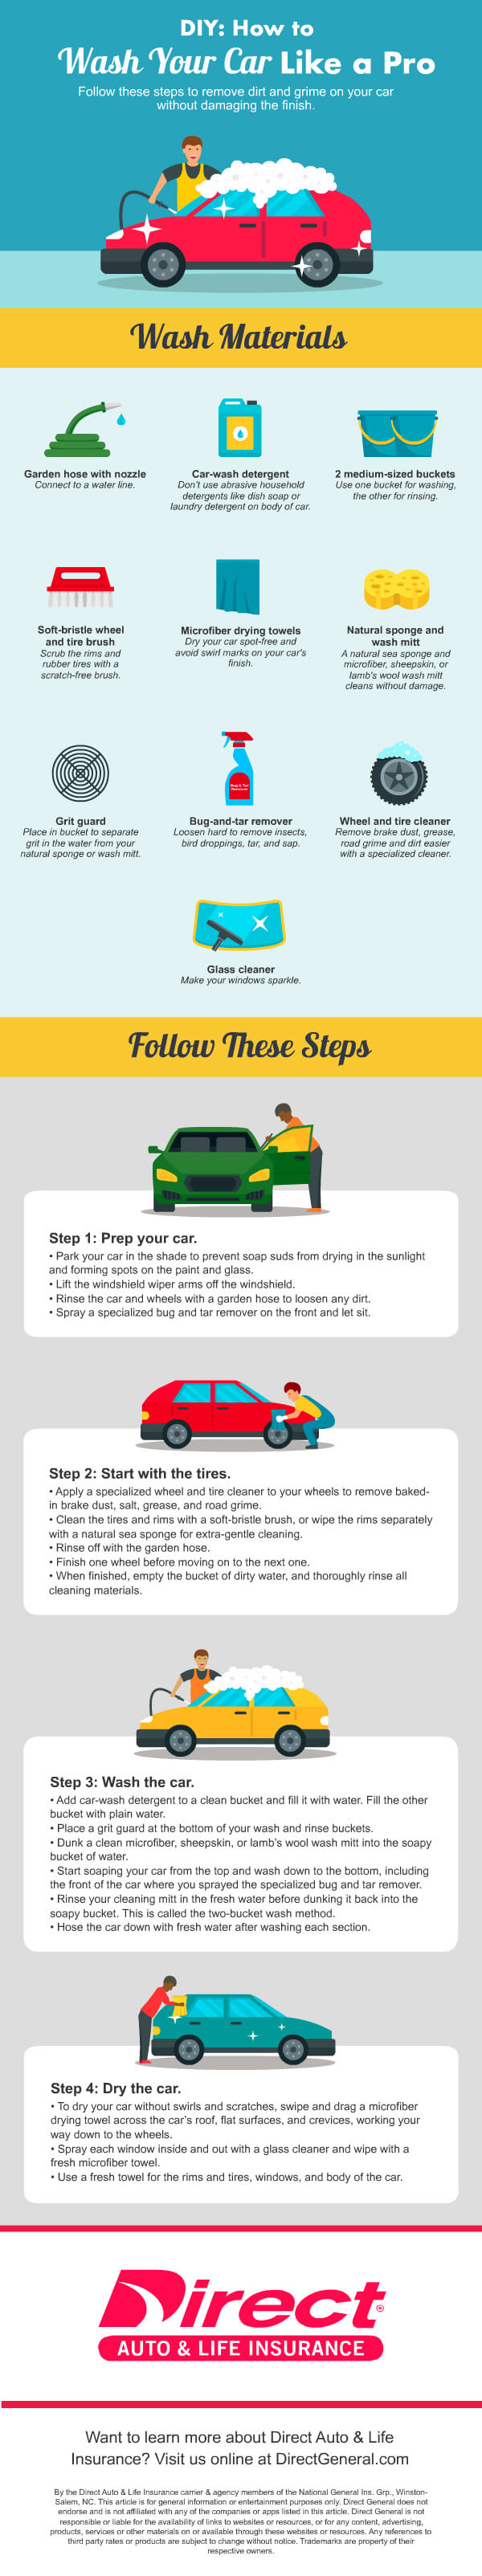 How to wash your car infographic step by step